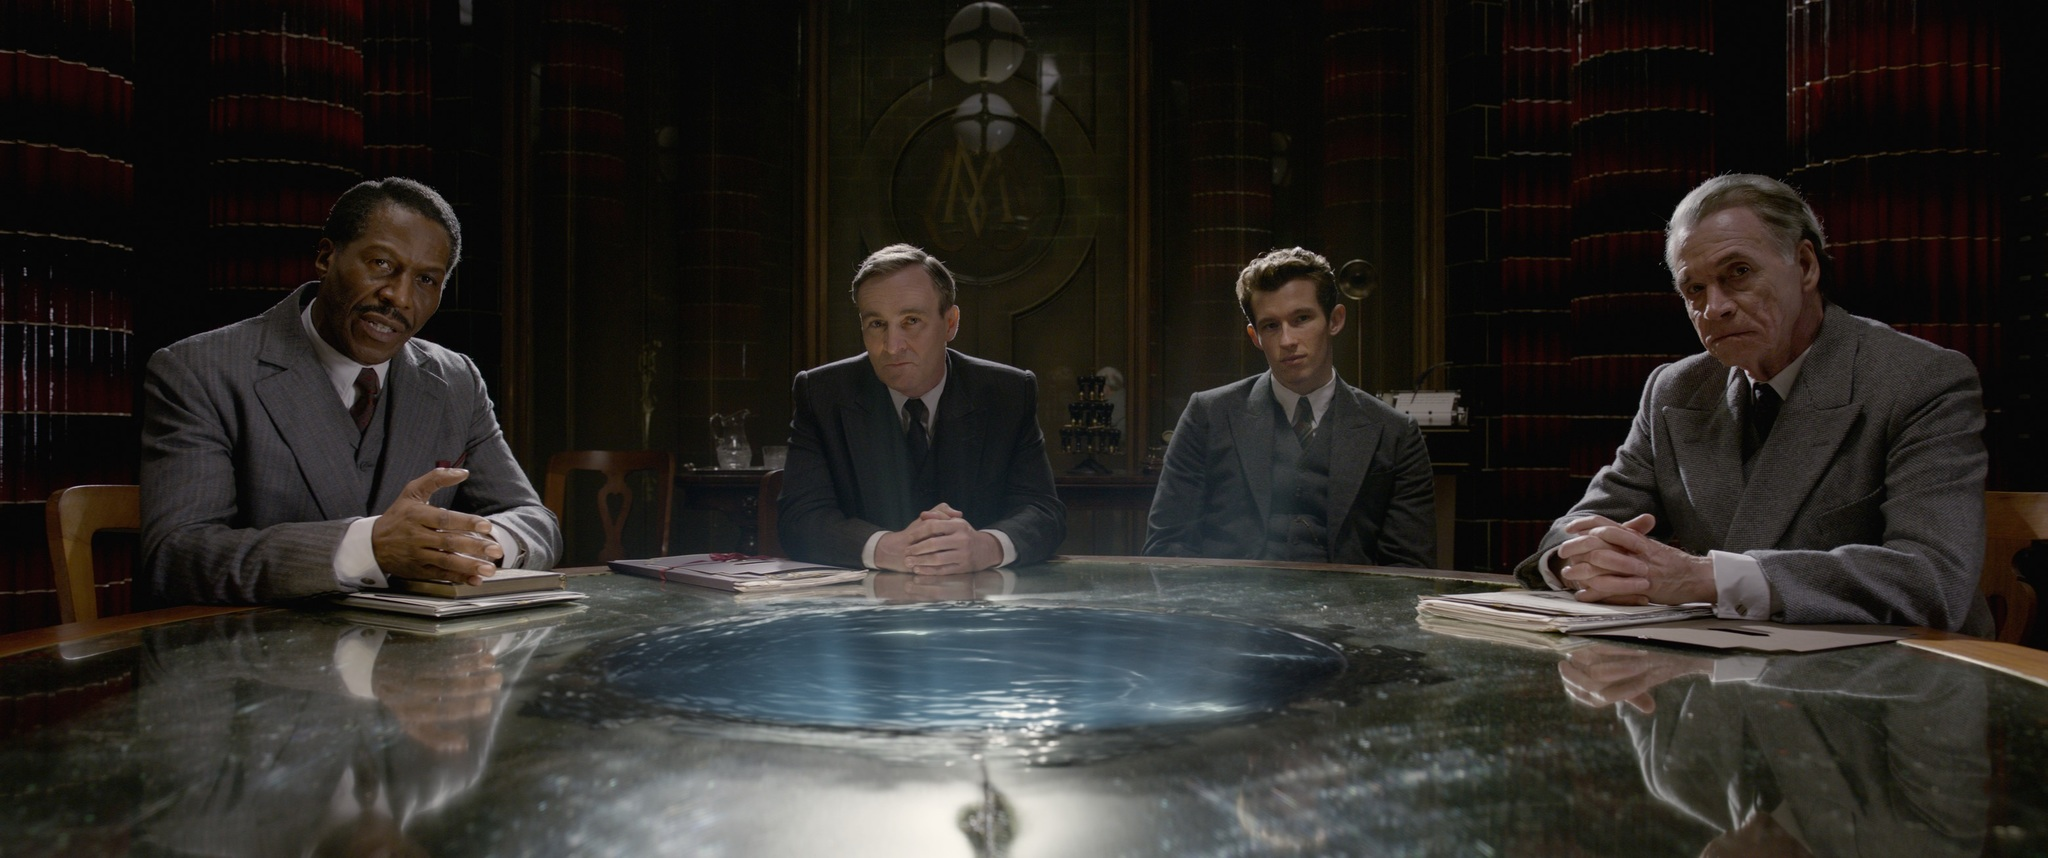 Cornell John, Derek Riddell, Wolf Roth, and Callum Turner in Fantastic Beasts: The Crimes of Grindelwald (2018)